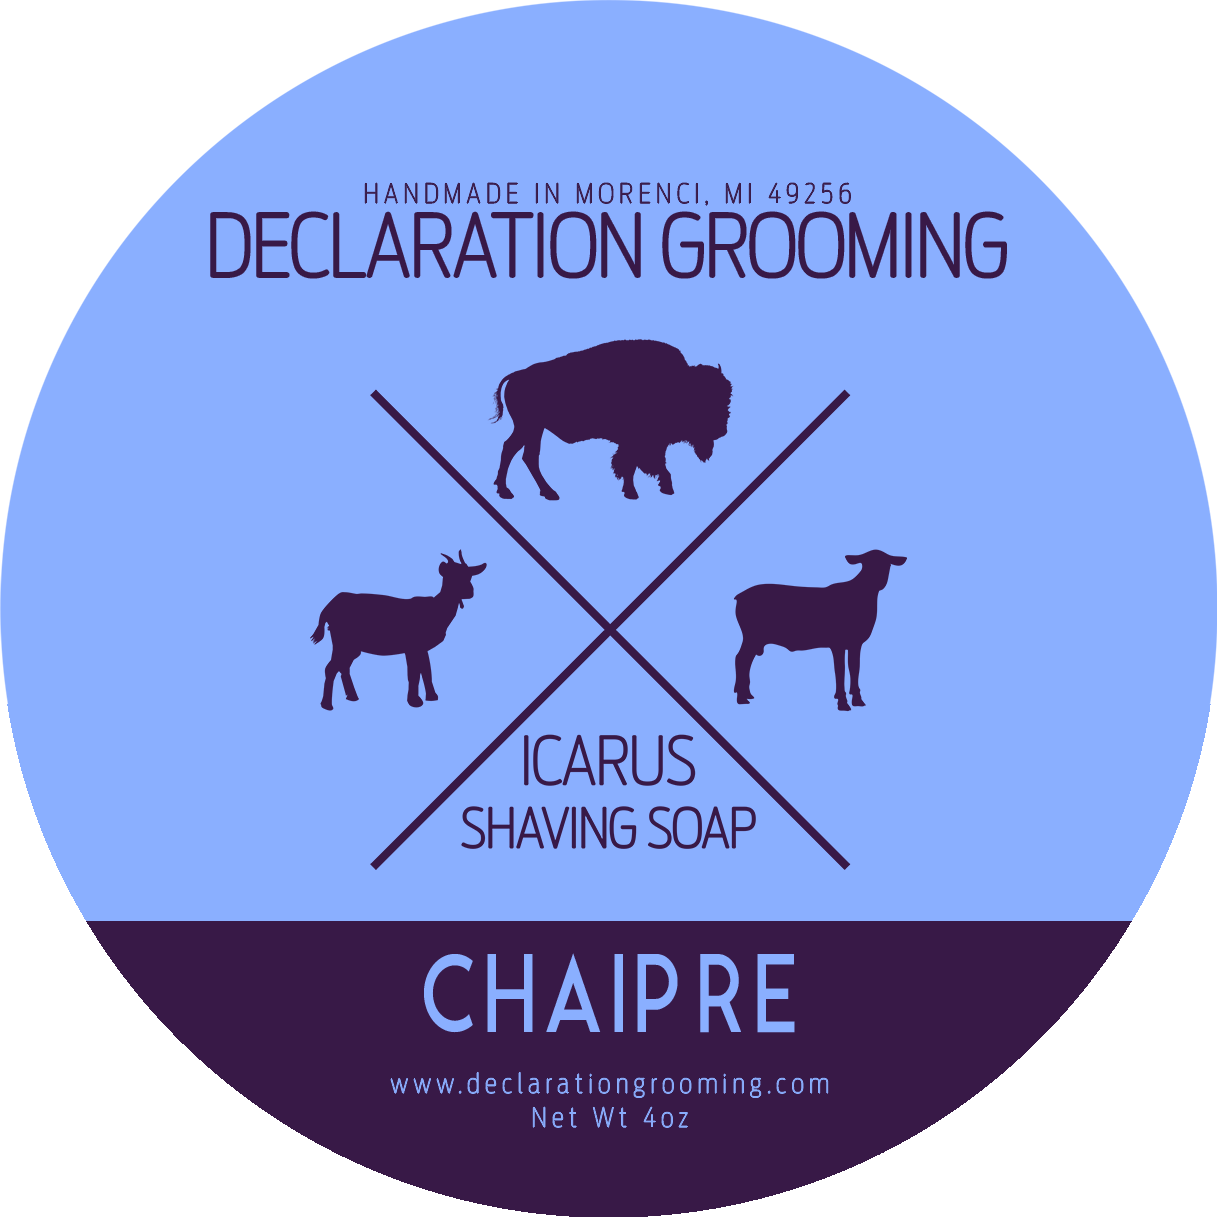 Declaration Grooming - Chaipre - Soap image